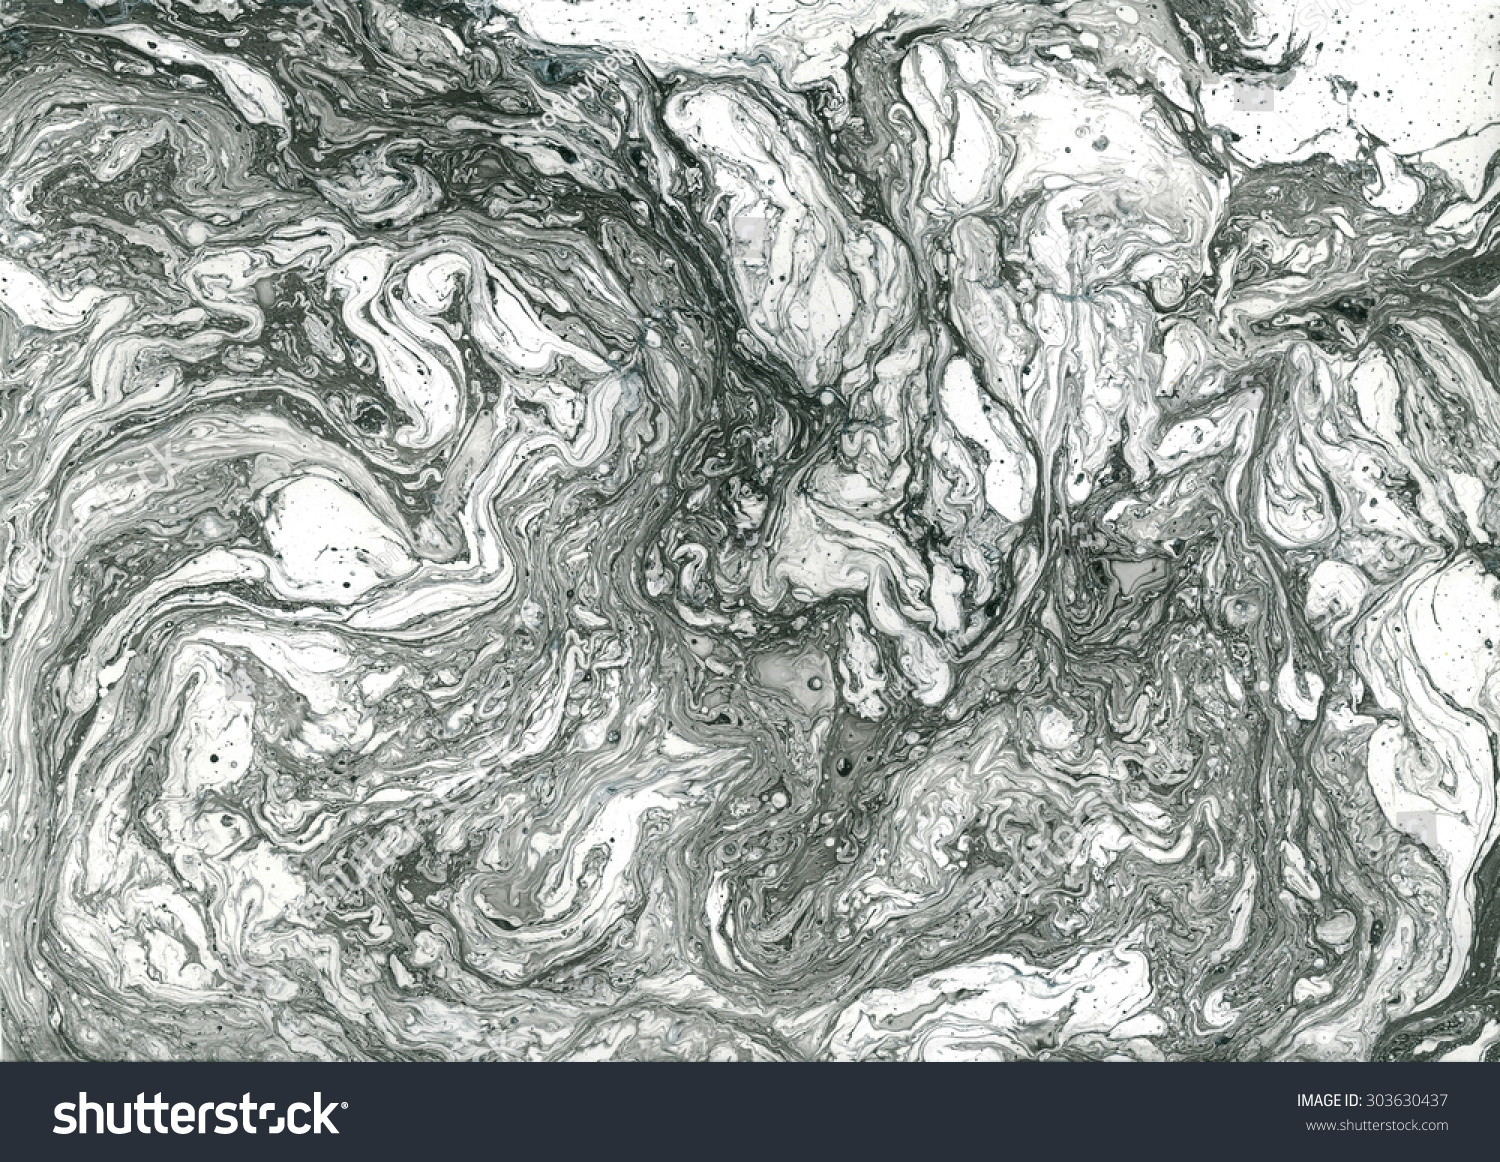 Beautiful abstract background marble modern creative artwork black ink and gray acrylic paint on white surface contemporary art grunge image